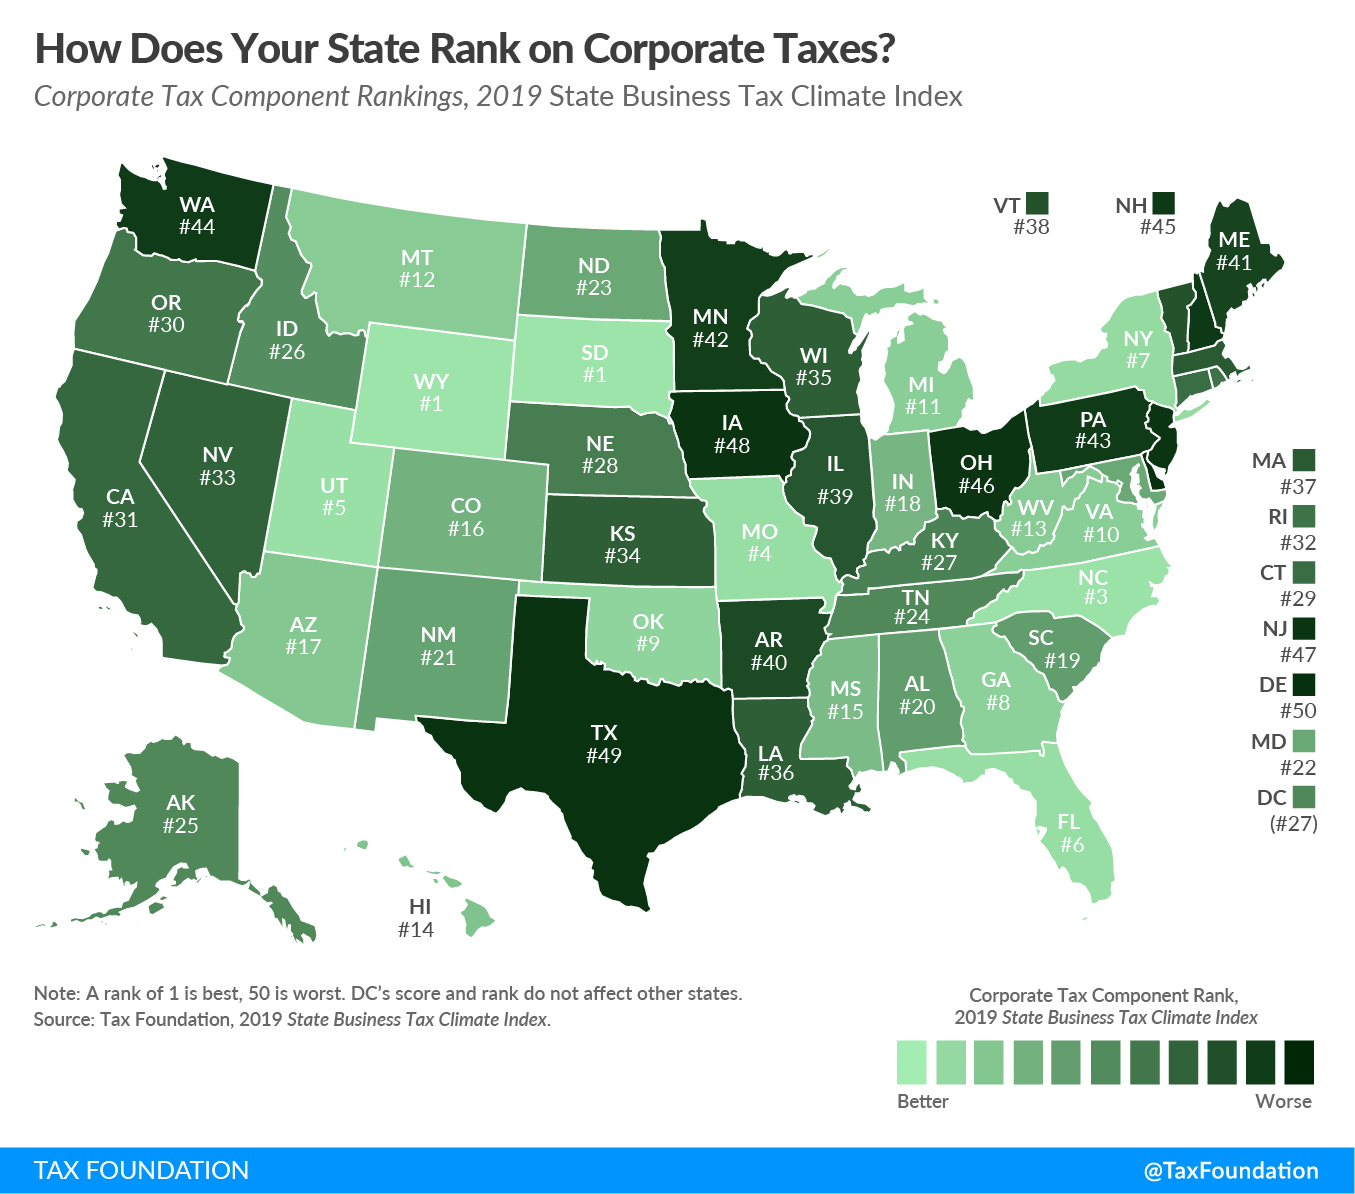 North Carolina Ranks Third Nationwide in Competitive Corporate Income Taxes